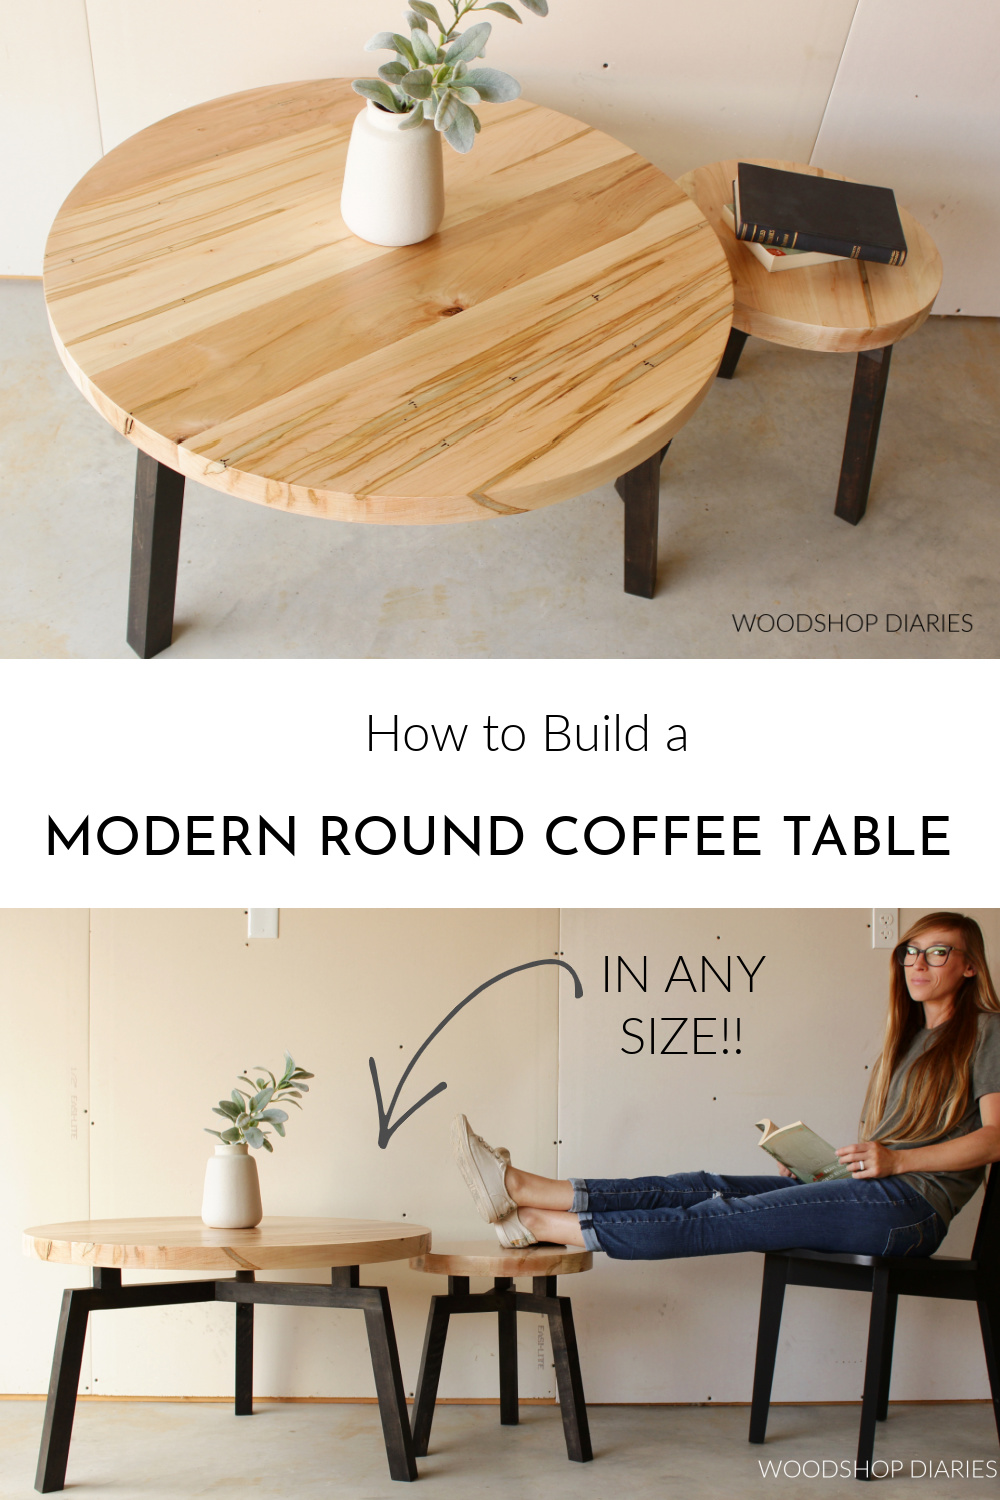 """Pinterest collage image showing overhead view of round coffee tables at top with Shara Woodshop Diaries sitting by coffee tables at bottom with text """"How to build a modern round coffee table"""""""